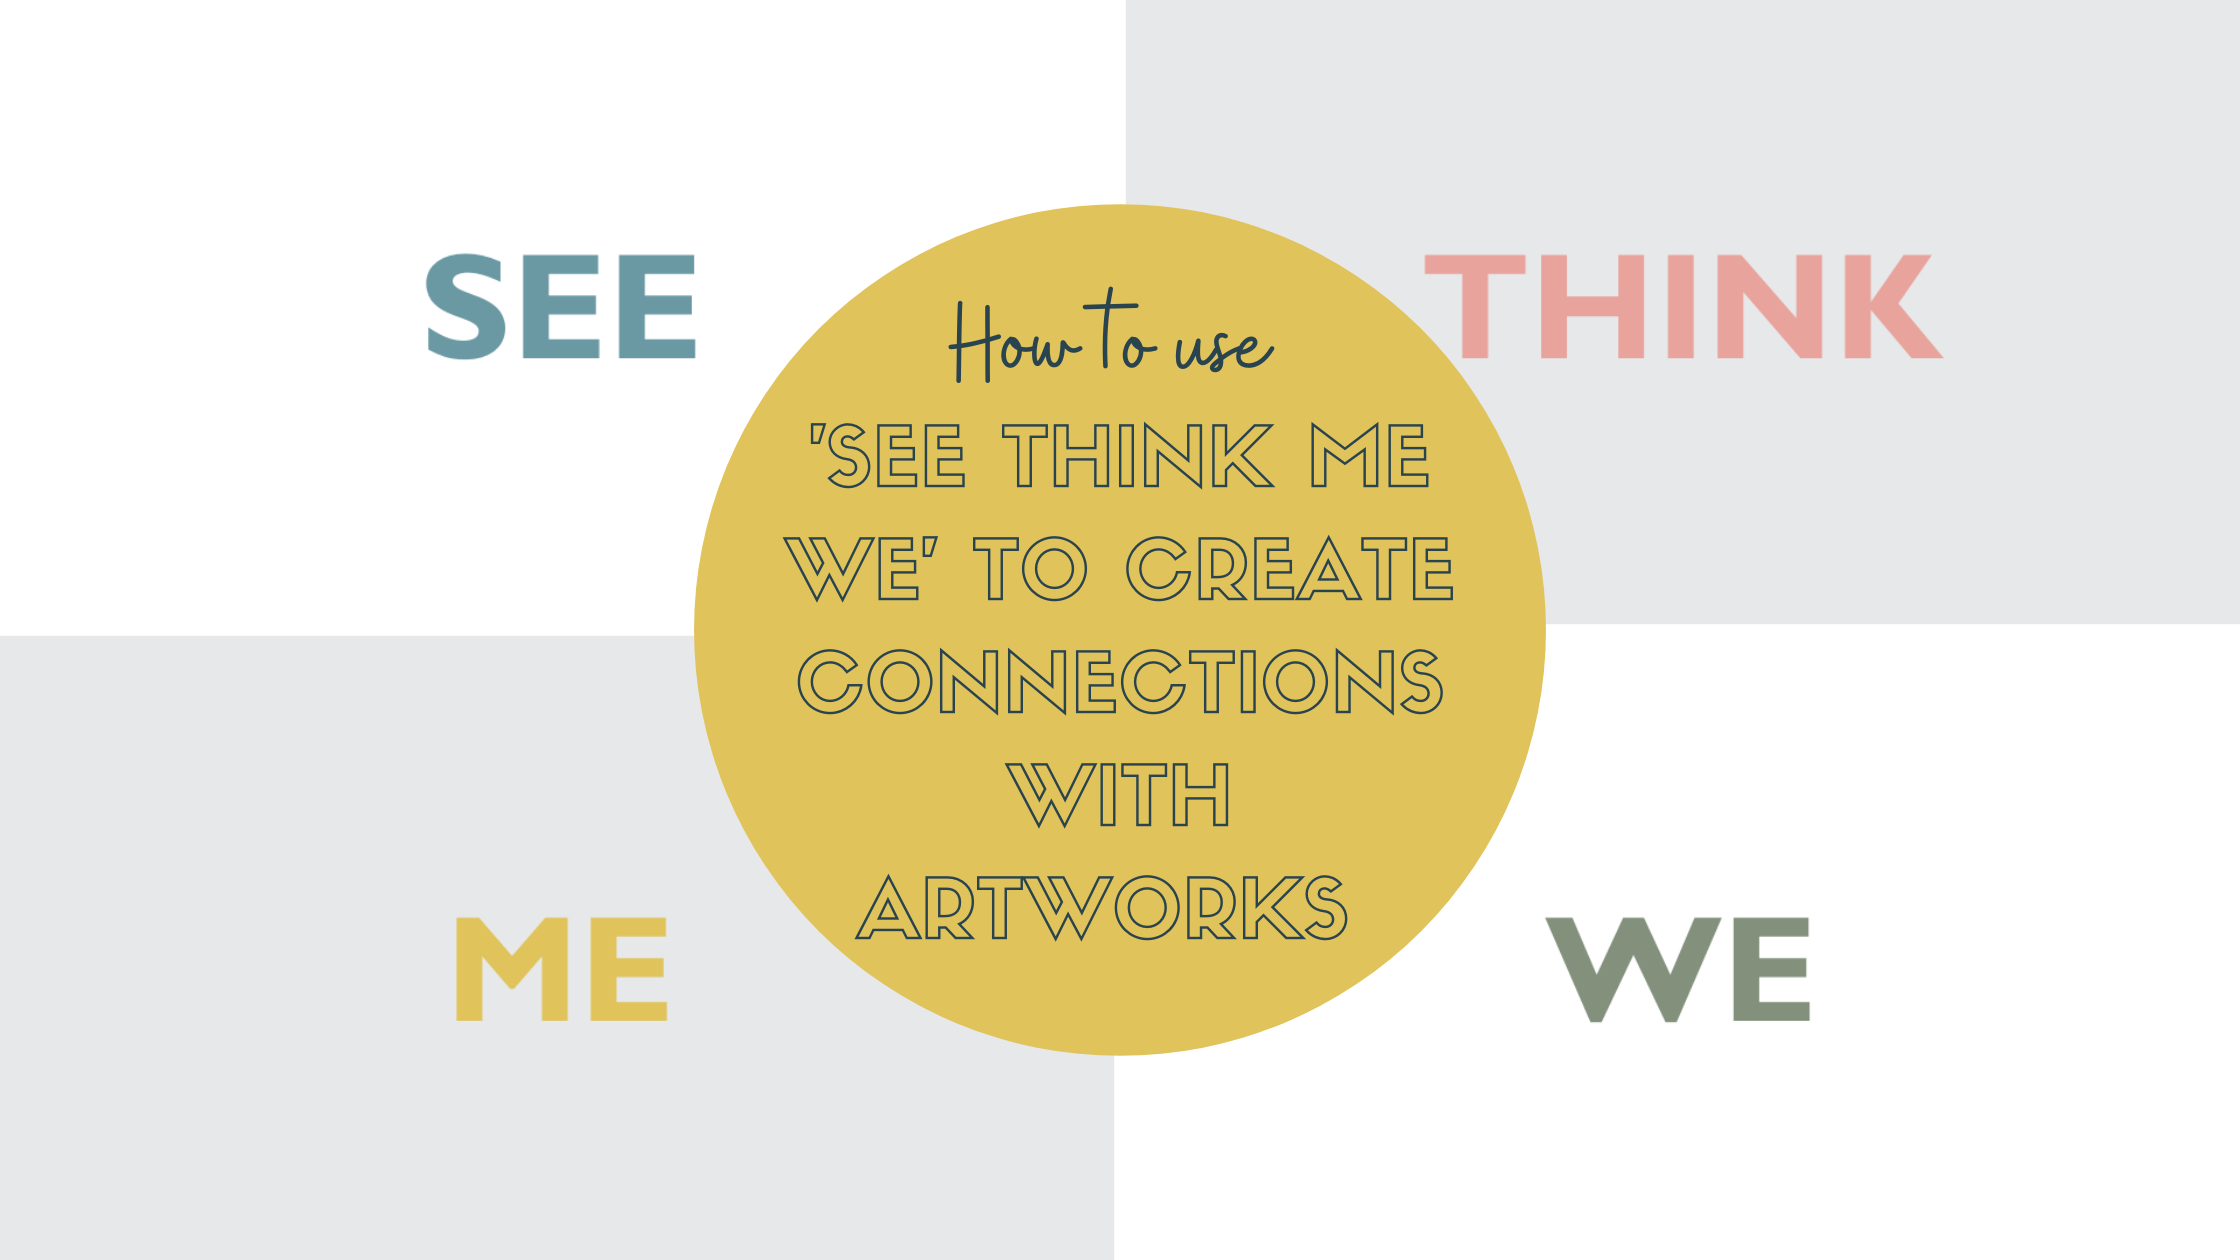 HOW TO USE SEE THINK ME WE TO CREATE PERSONAL AND COMMUNITY CONNECTIONS WITH ARTWORKS